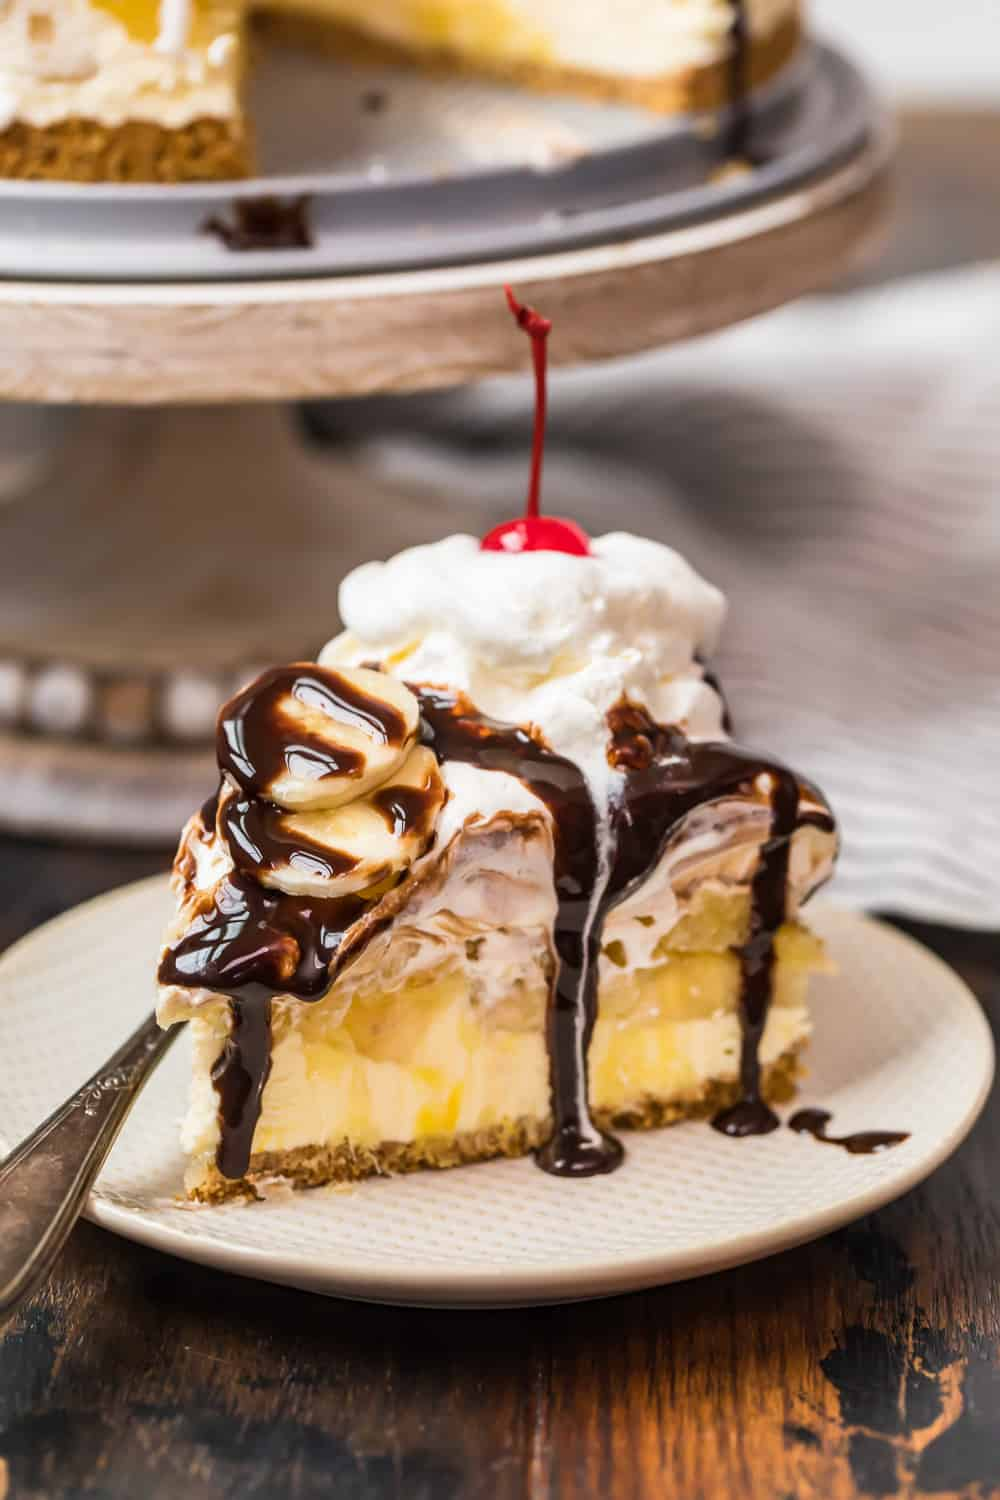 chocolate sauce drizzled on banana split dessert